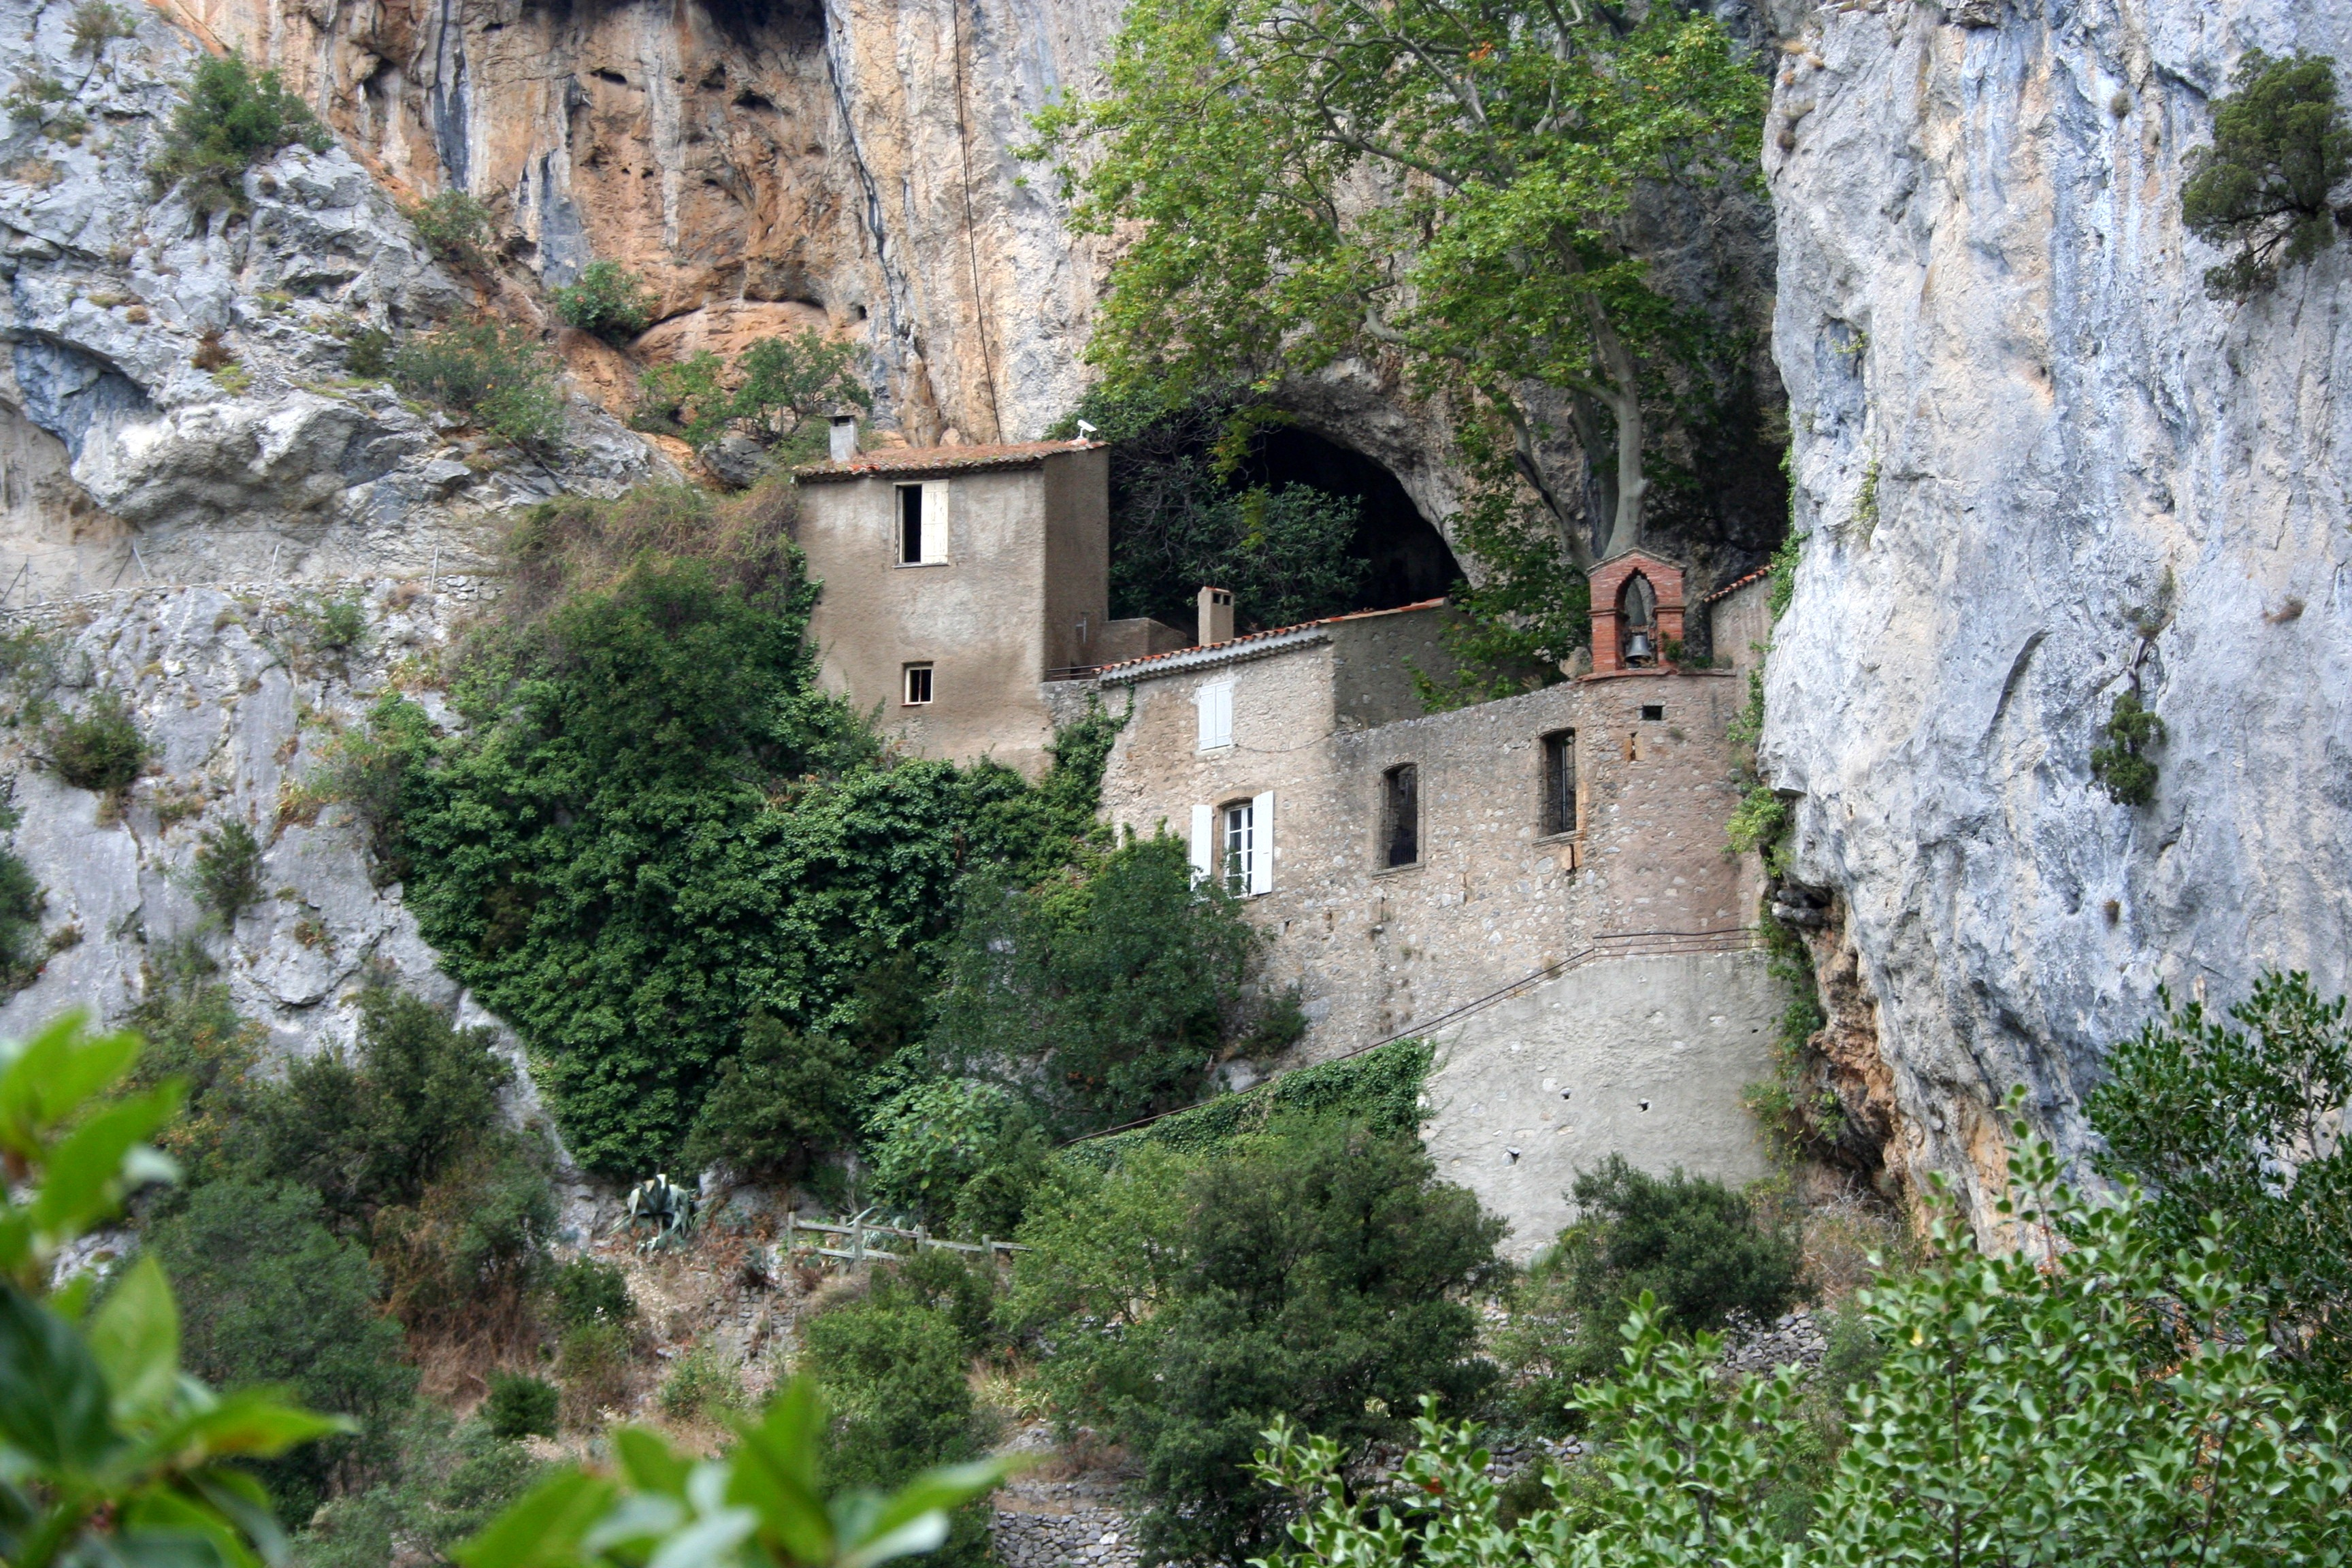 St Anthony Hermitage